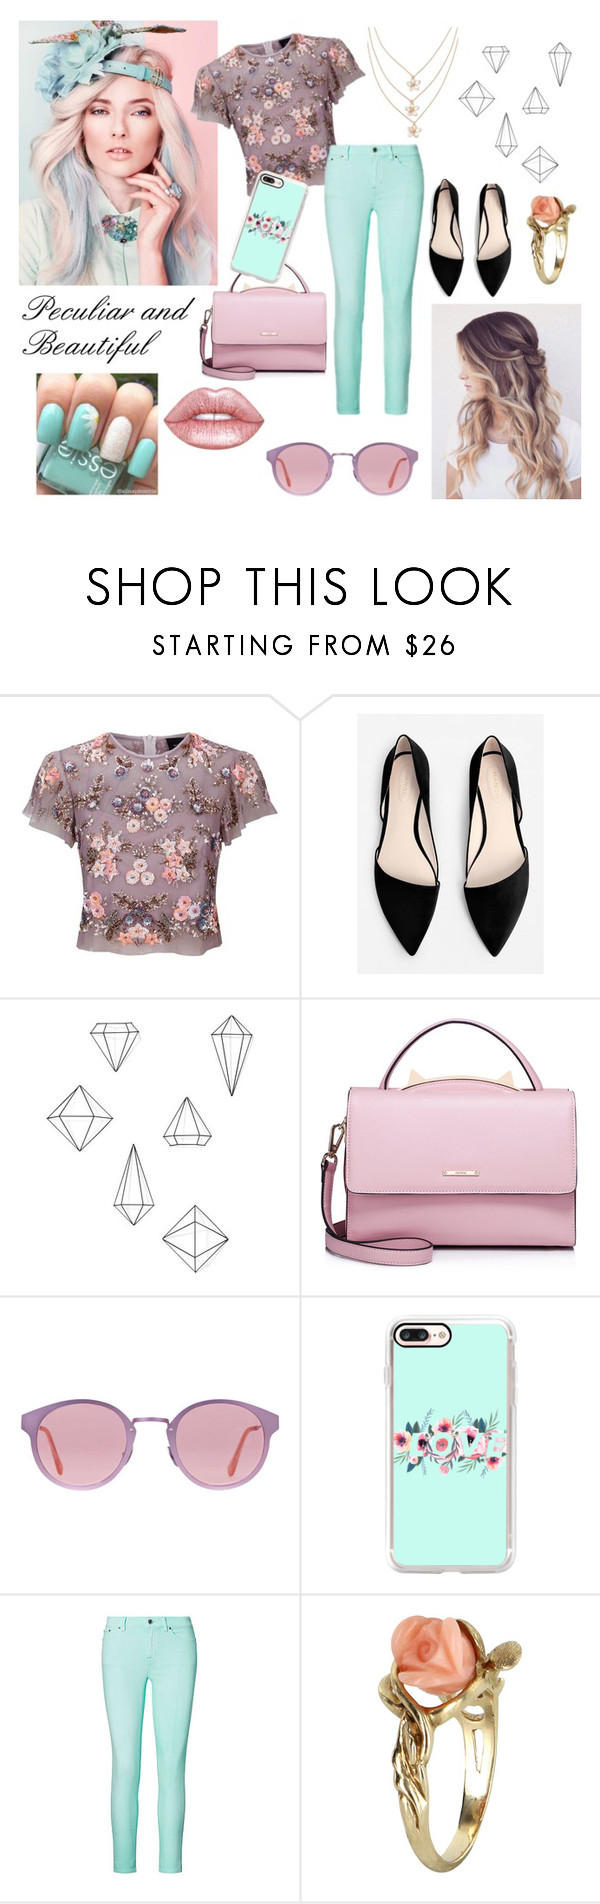 """Peculiar and Beautiful"" by merylrs ❤ liked on Polyvore featuring Needle & Thread, MANGO, Umbra, WithChic, RetroSuperFuture, Casetify, Ralph Lauren, Vintage, Lime Crime and Color"